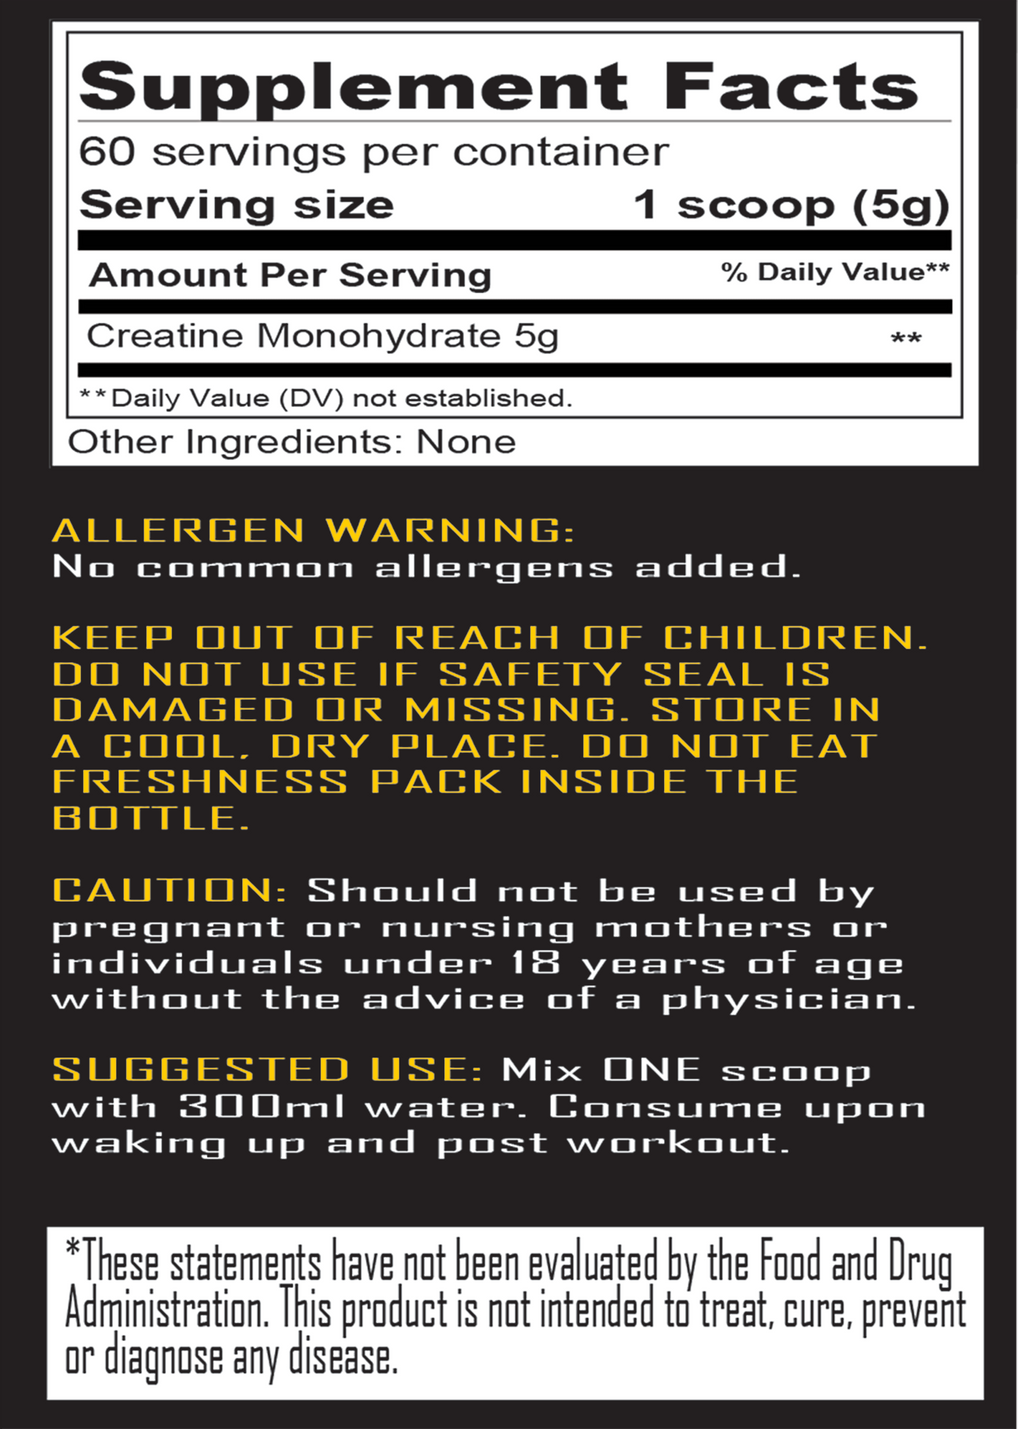 optimized-Creatine-Supplement-Facts.png